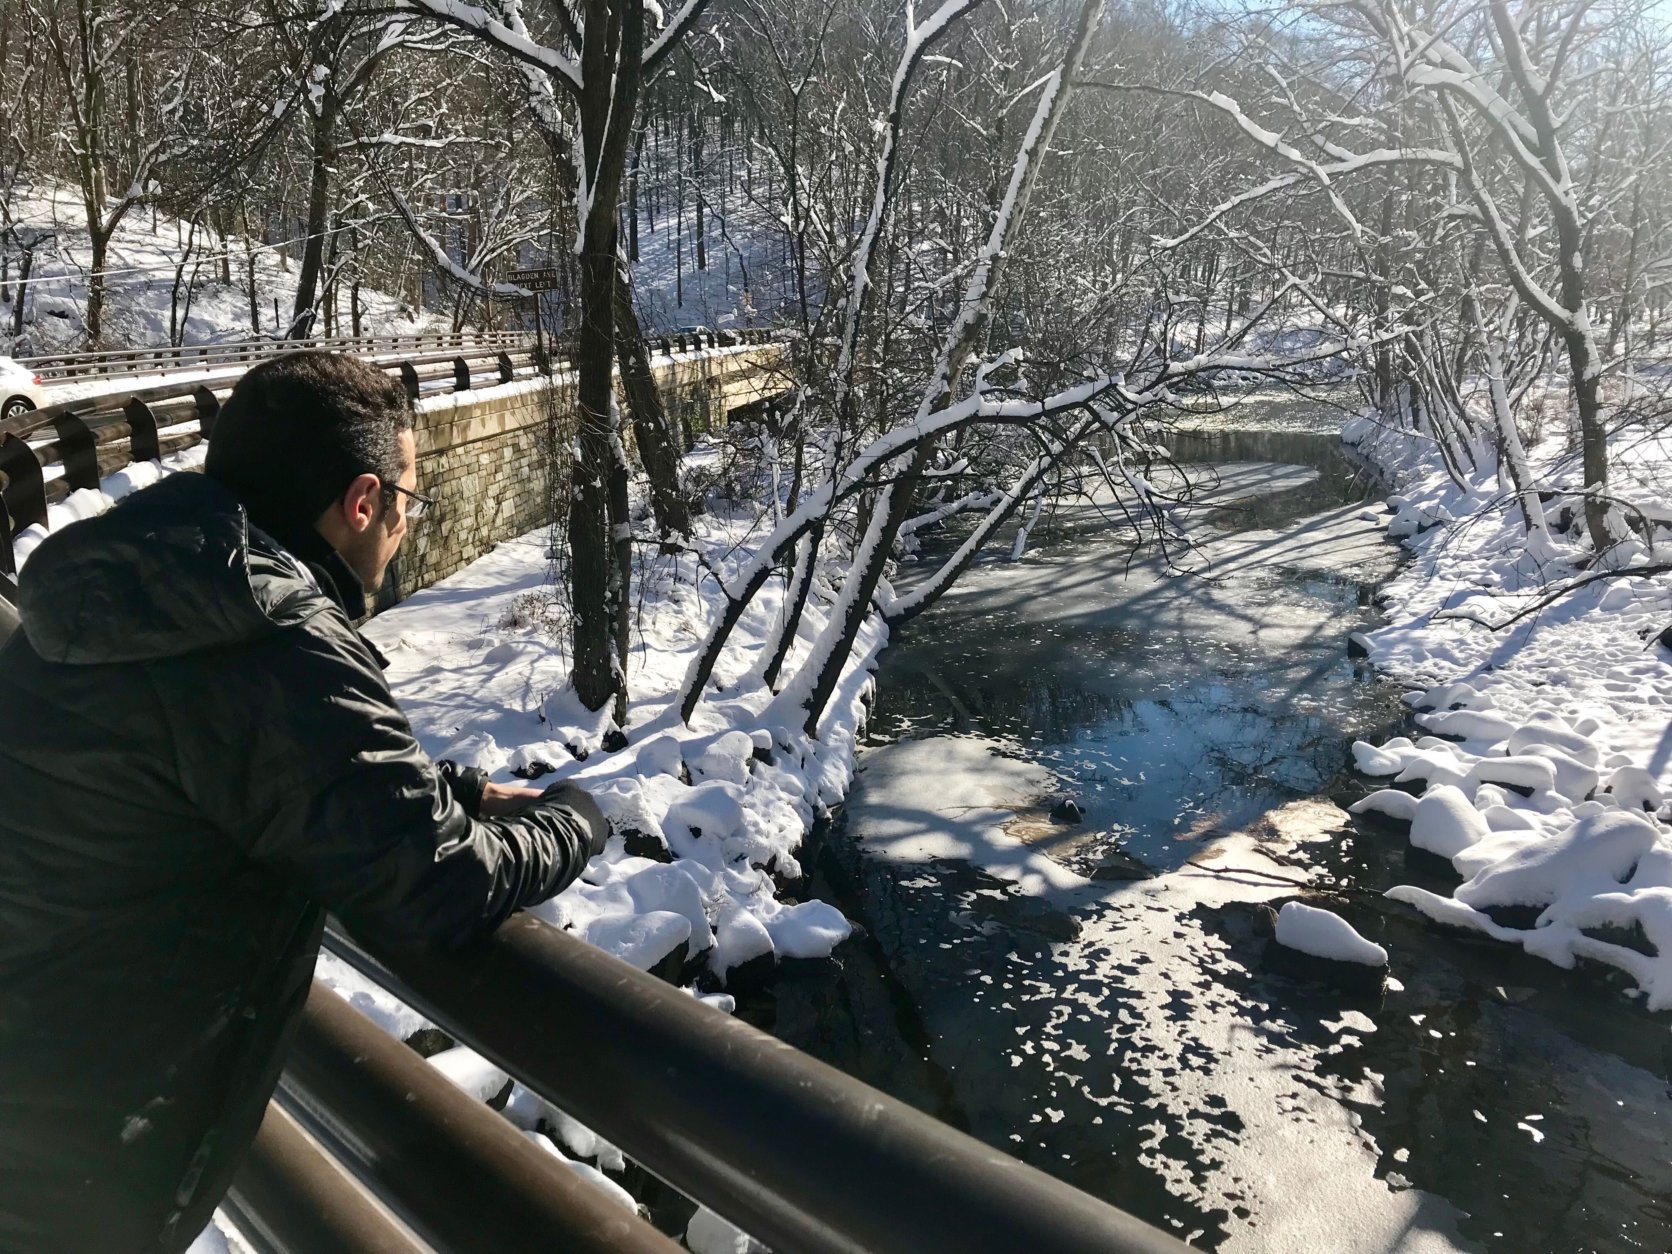 WTOP Reporter Dave Dildine looks over Broad Branch Creek where he first spotted a woman drowning on Sunday, January 13. (WTOP/Megan Cloherty)